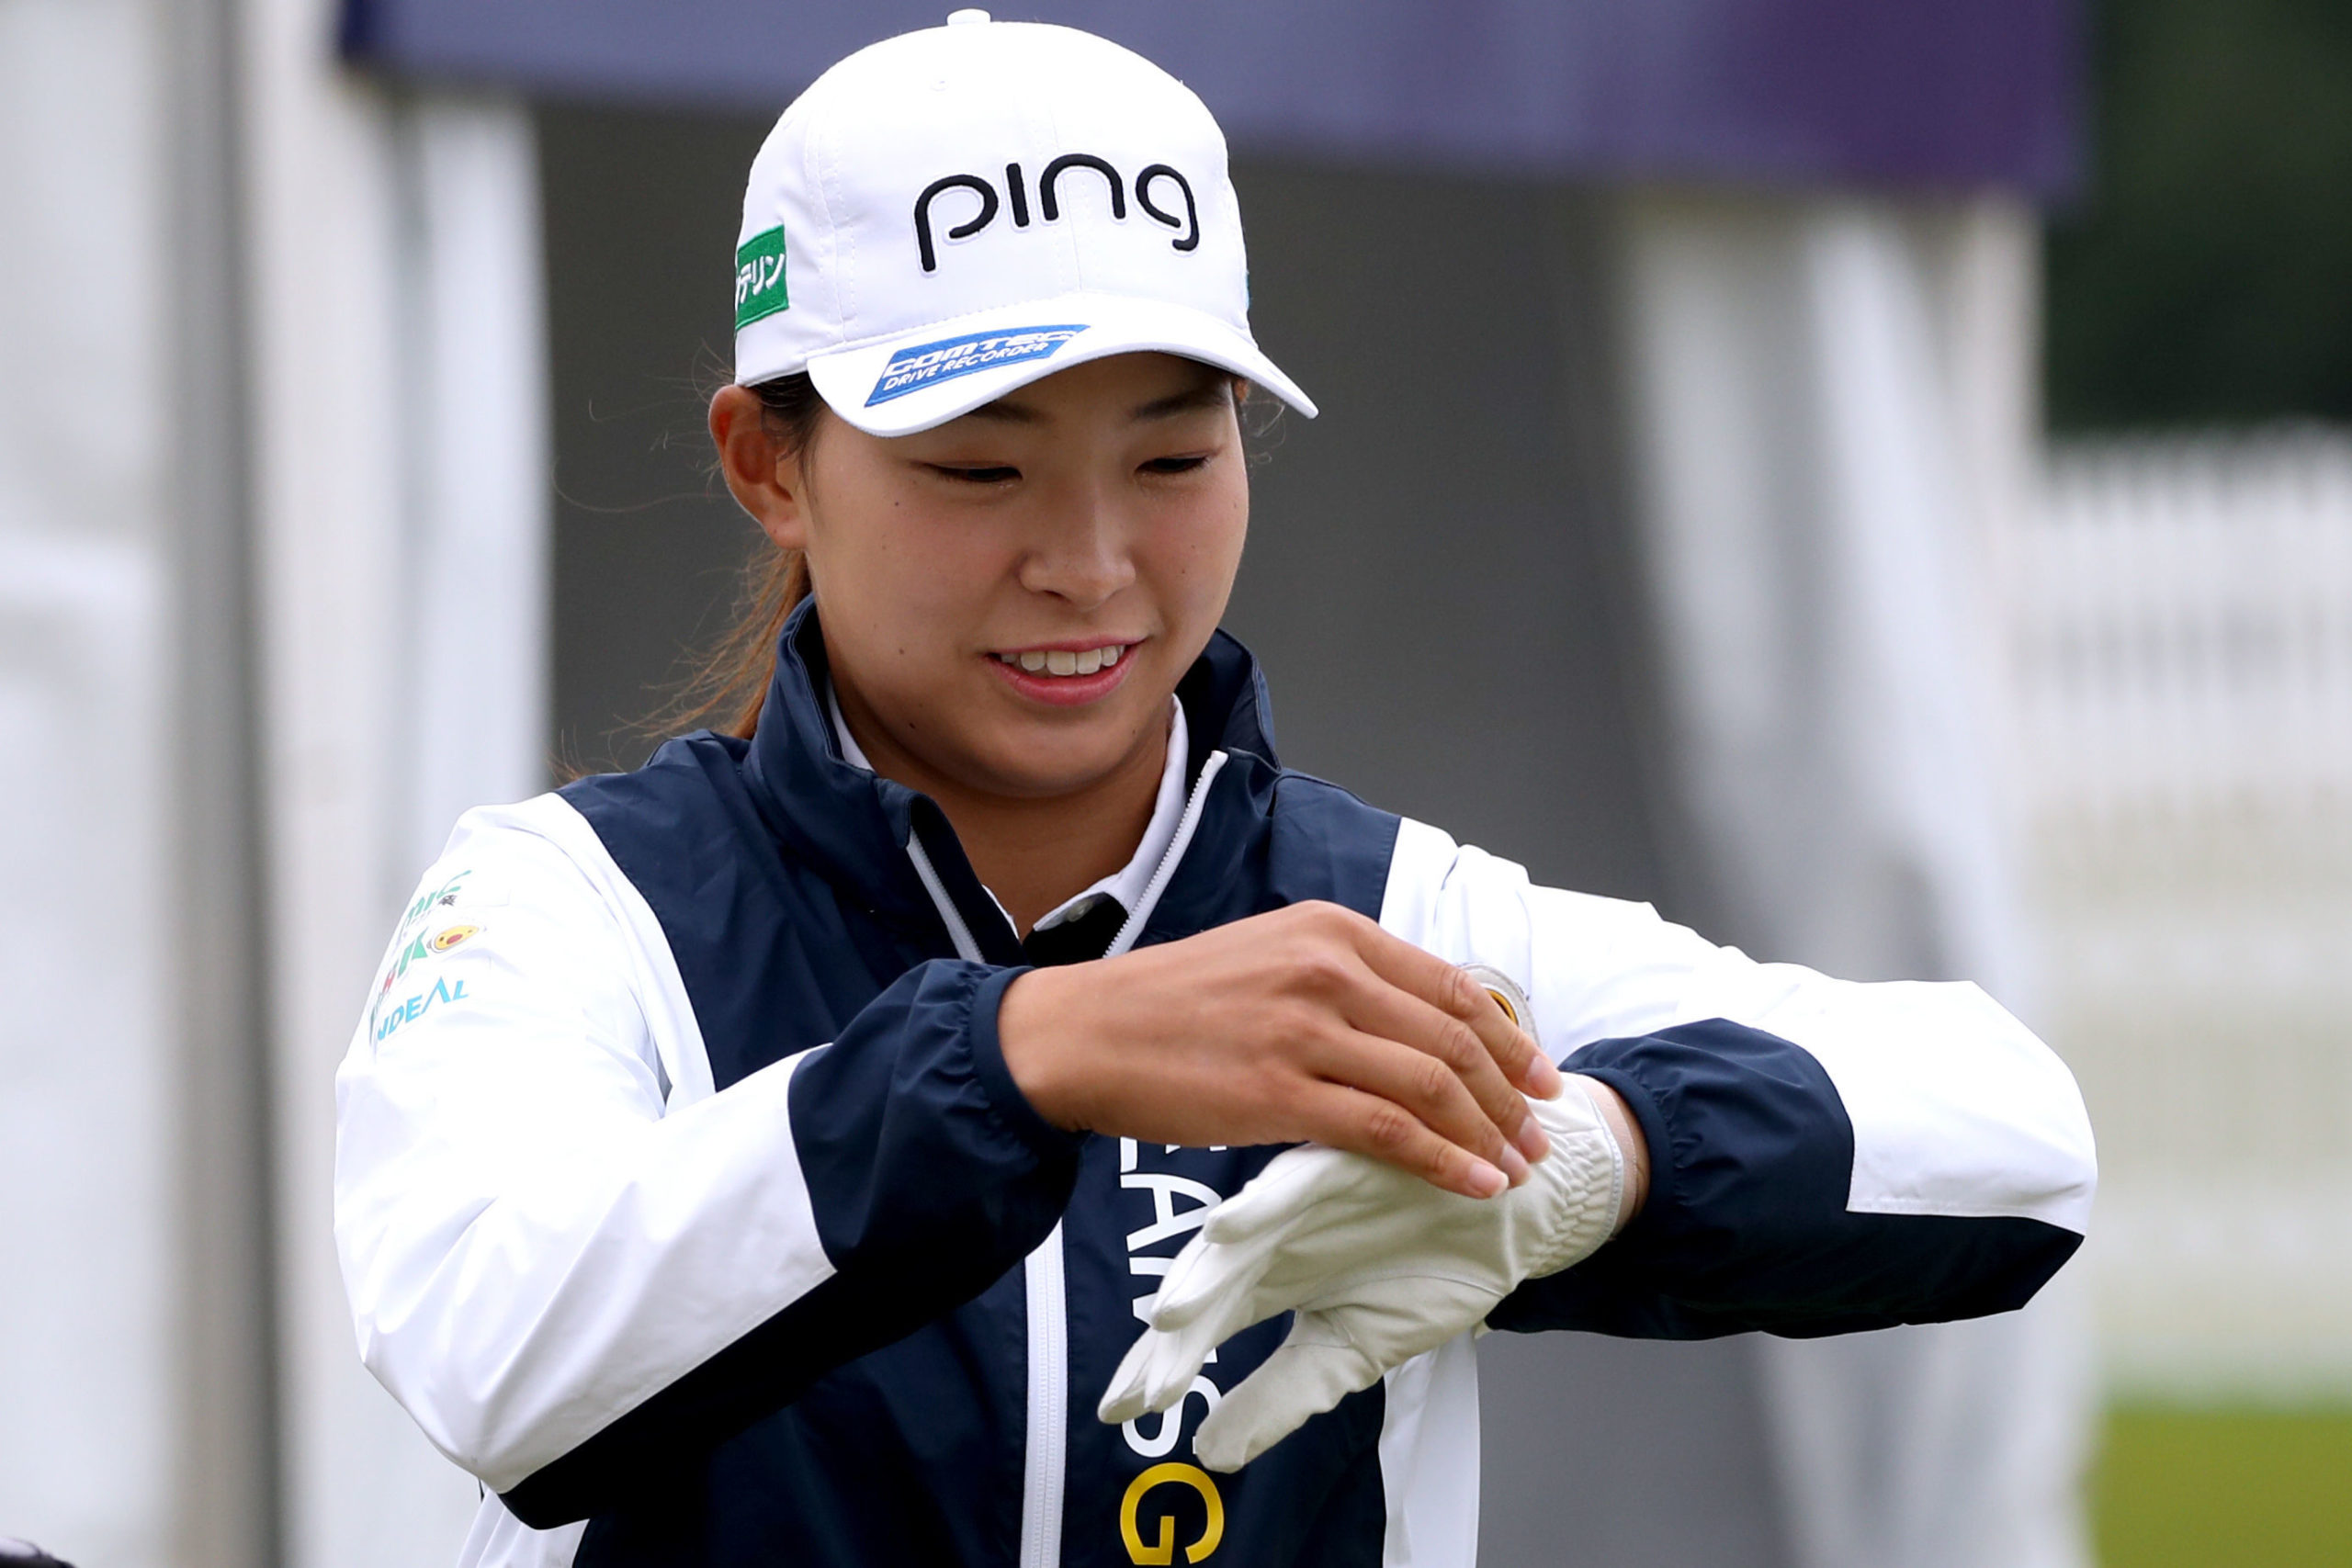 Japan's Hinako Shibuno became a superstar overnight in her homeland after winning the Women's Open.